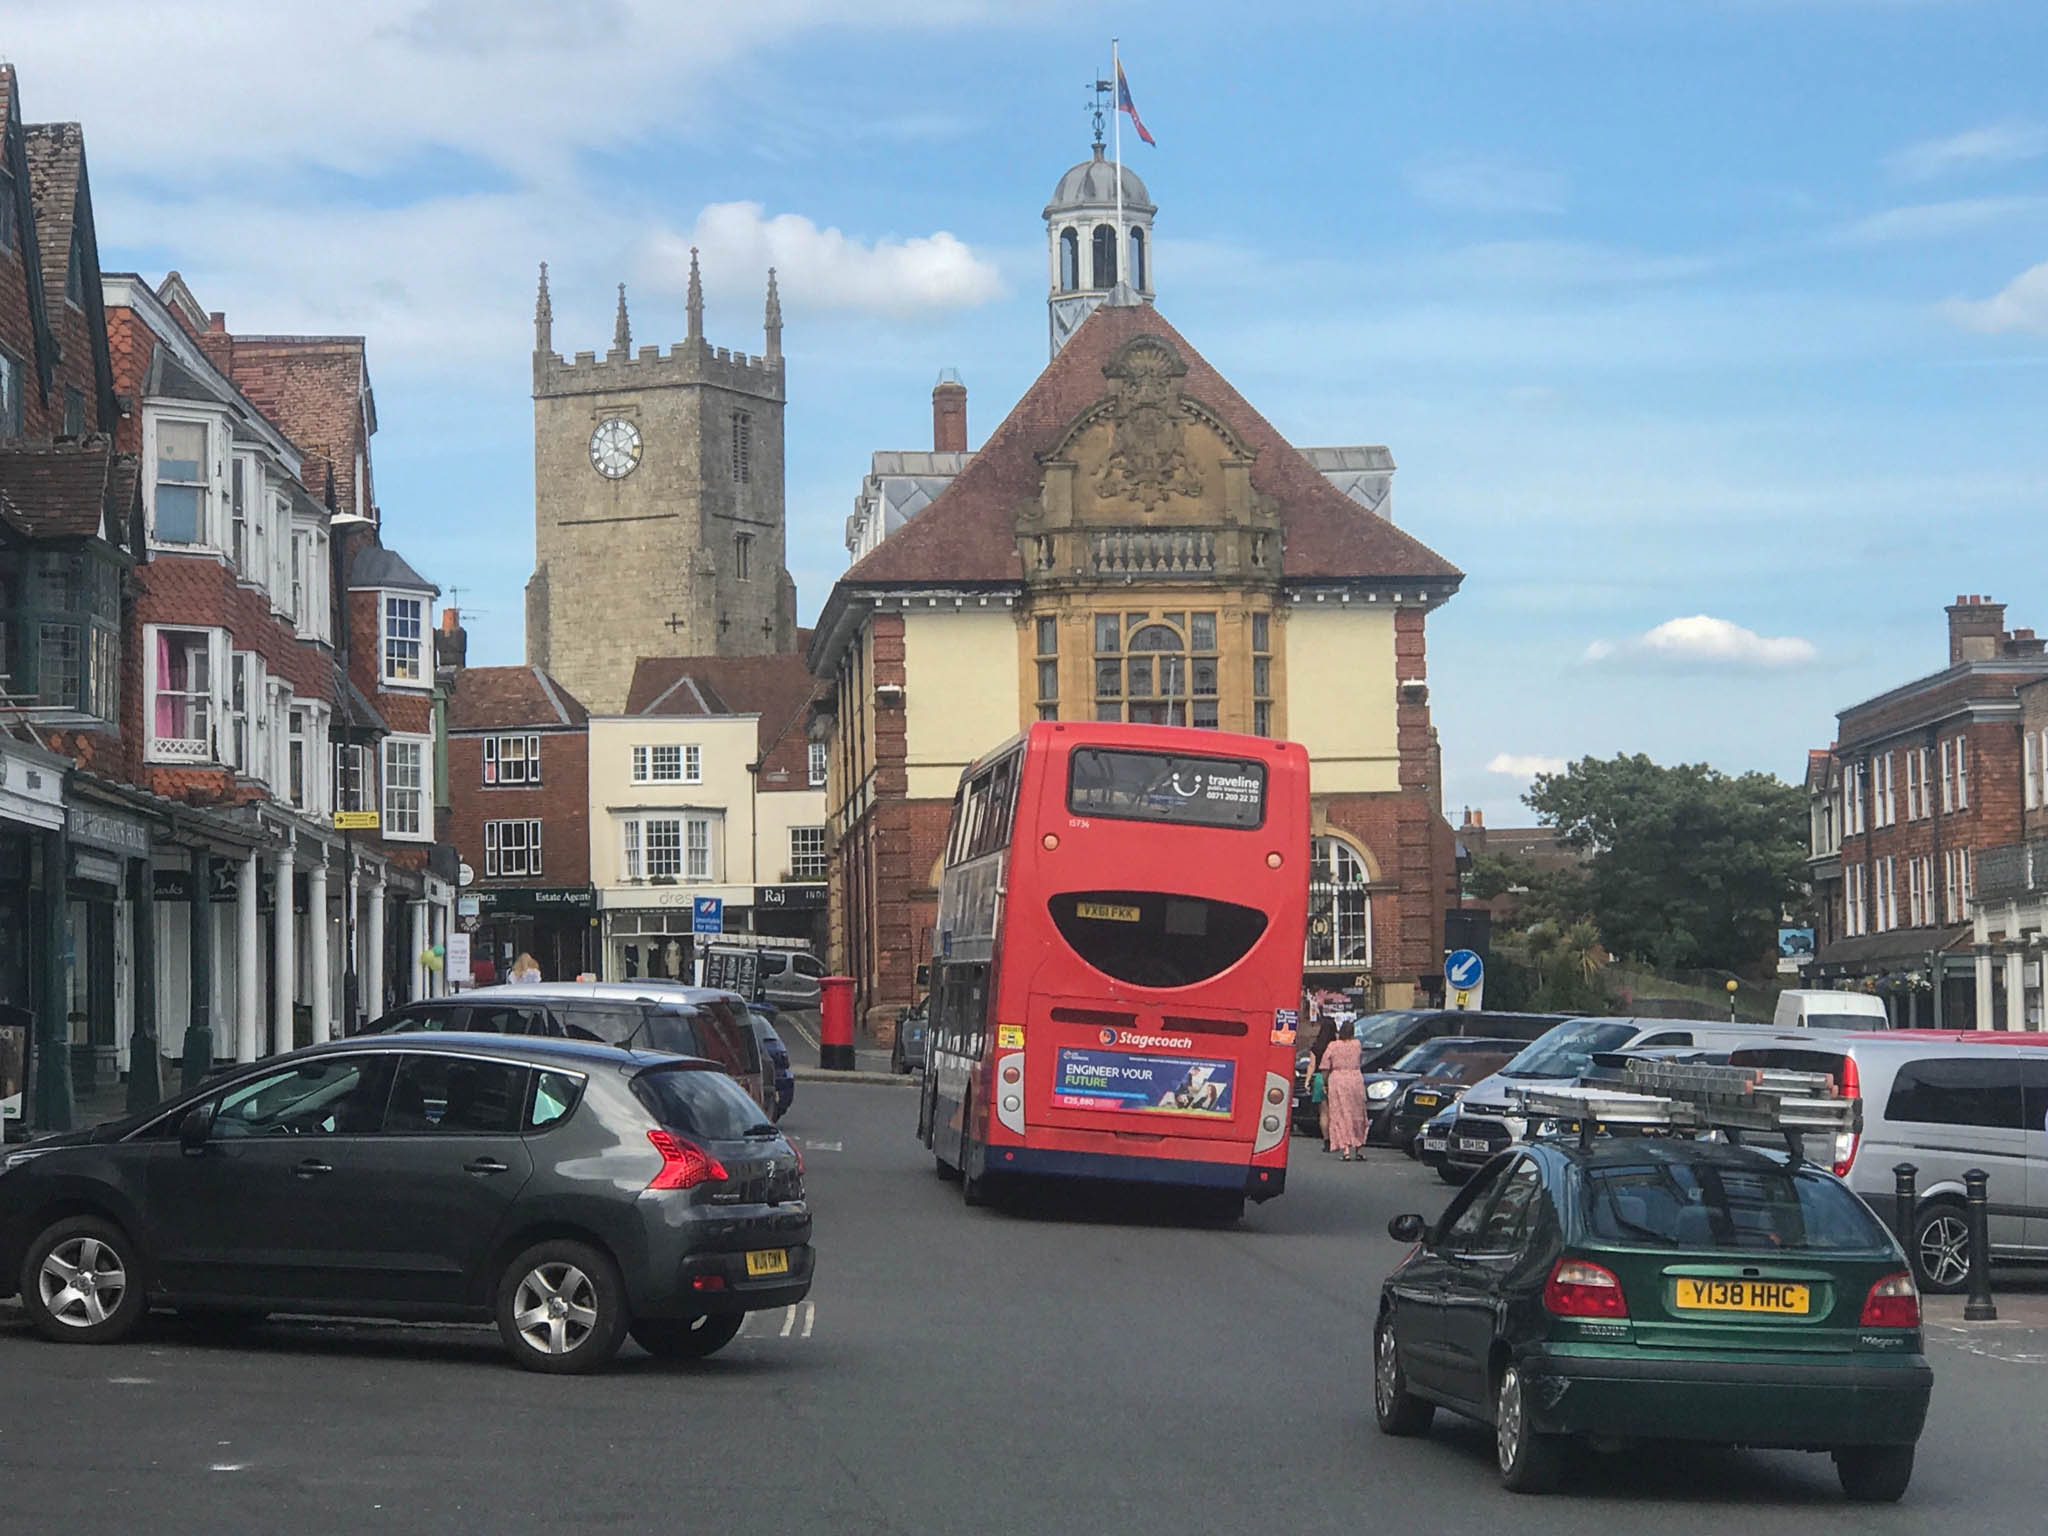 High Street in Marlborough